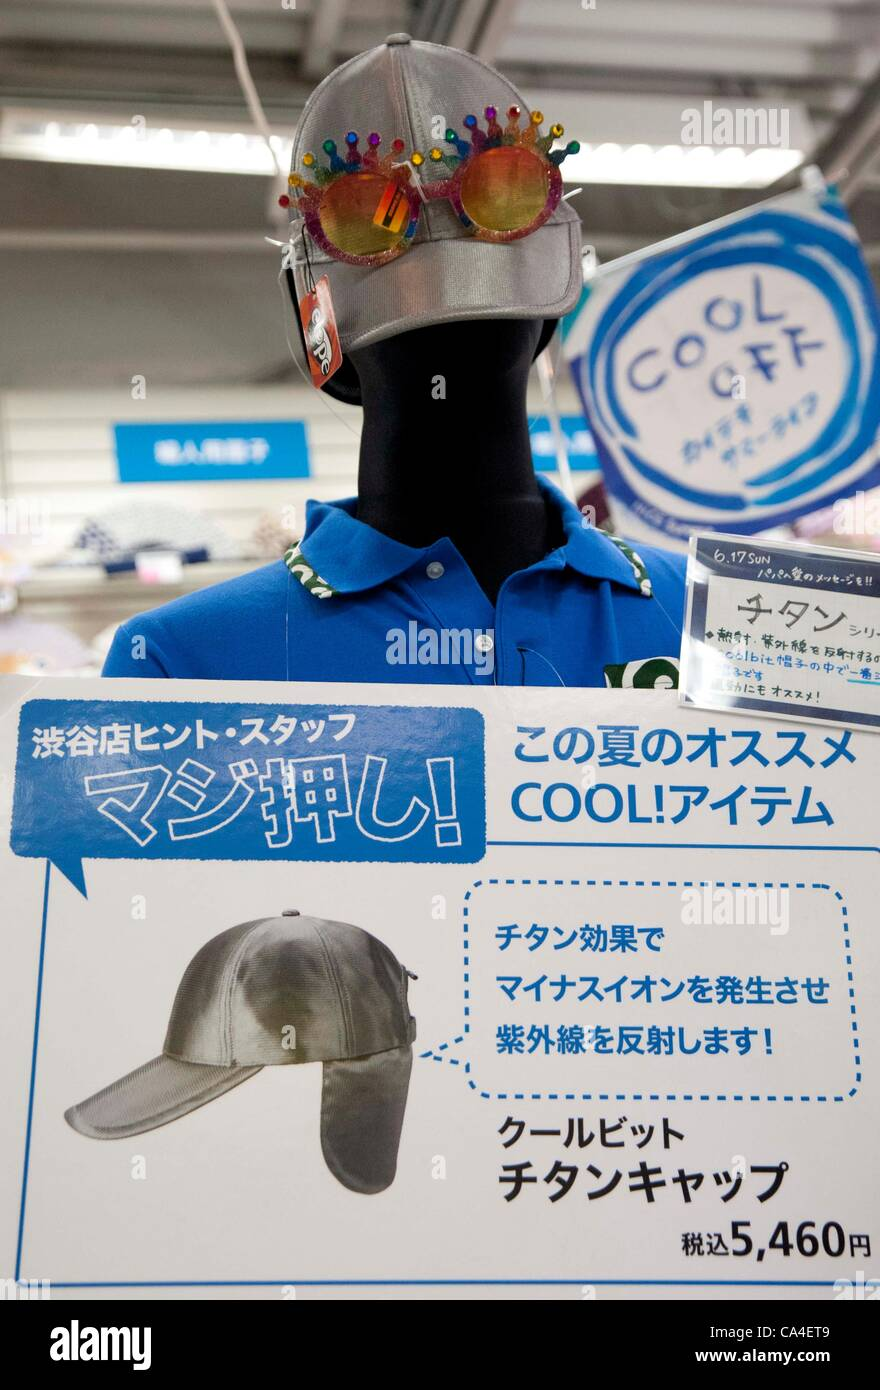 June 6, 2012, Tokyo, Japan – The recommended product of Tokyu Hands Shibuya is 'Titanium Cap', which can - Stock Image